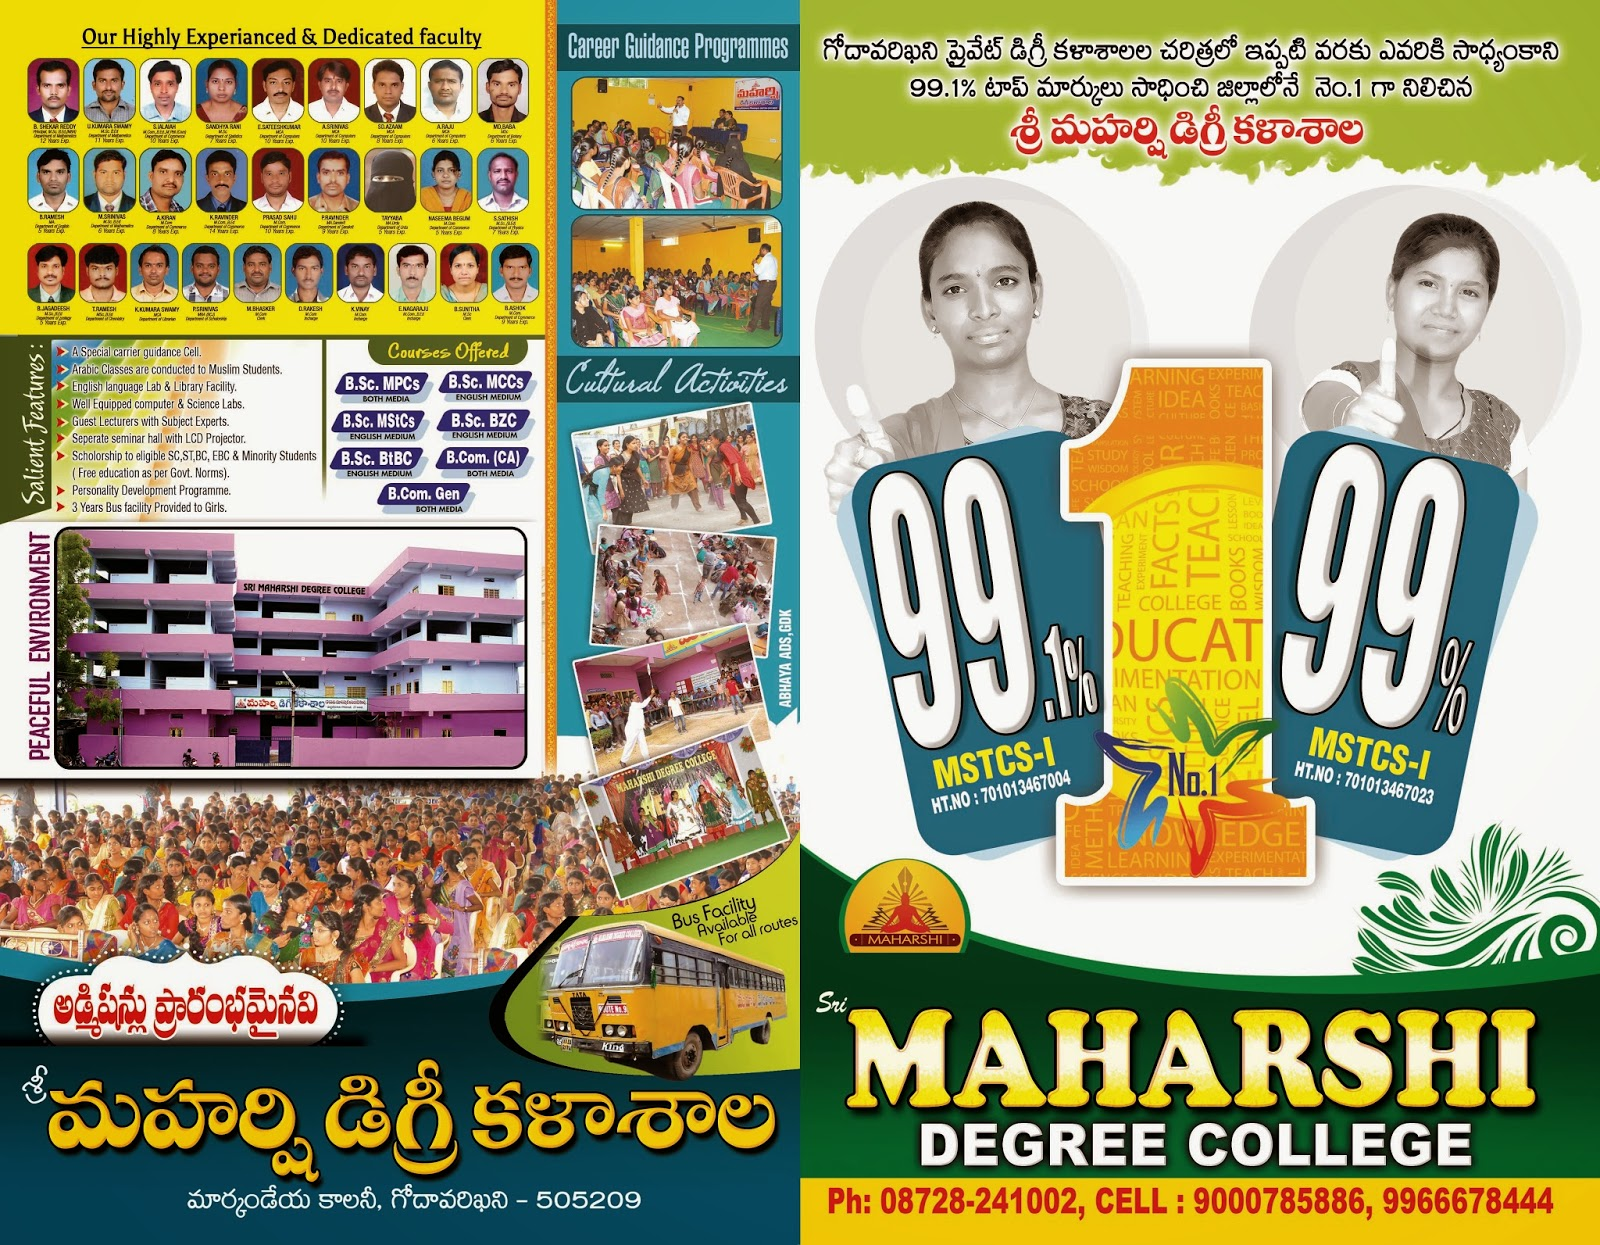 maharshi degree college brochure design psd template